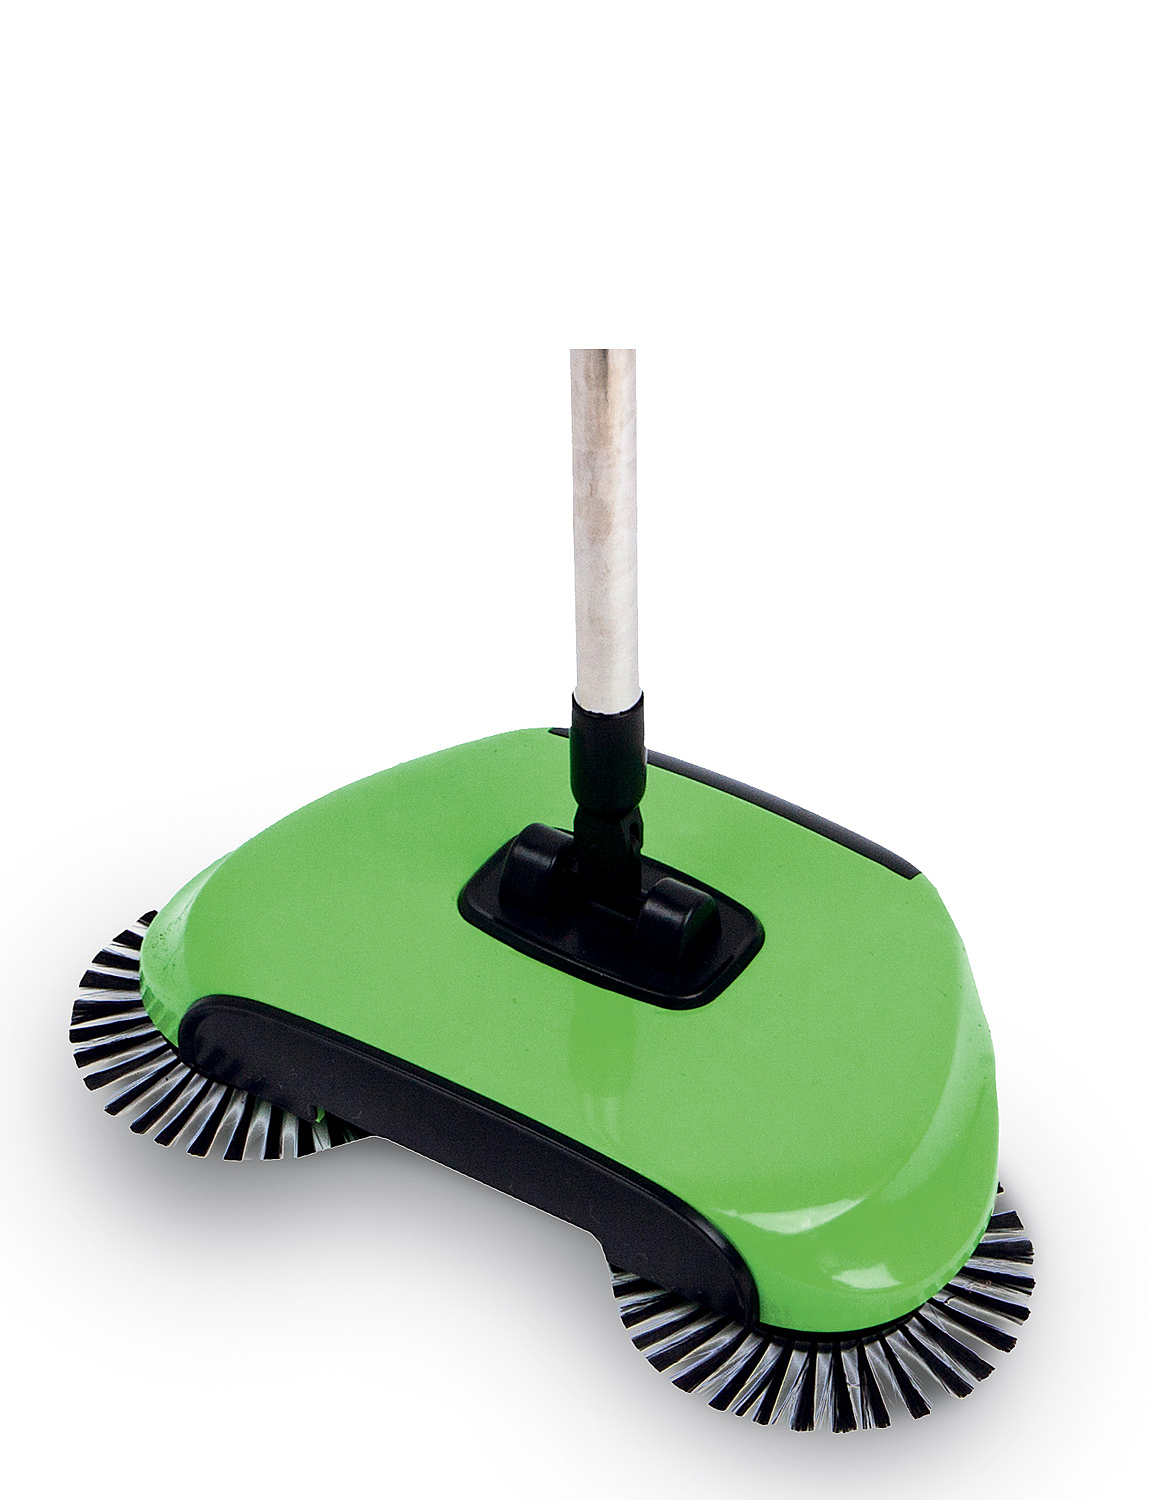 Edge-2-Edge Floor Sweeper - Green